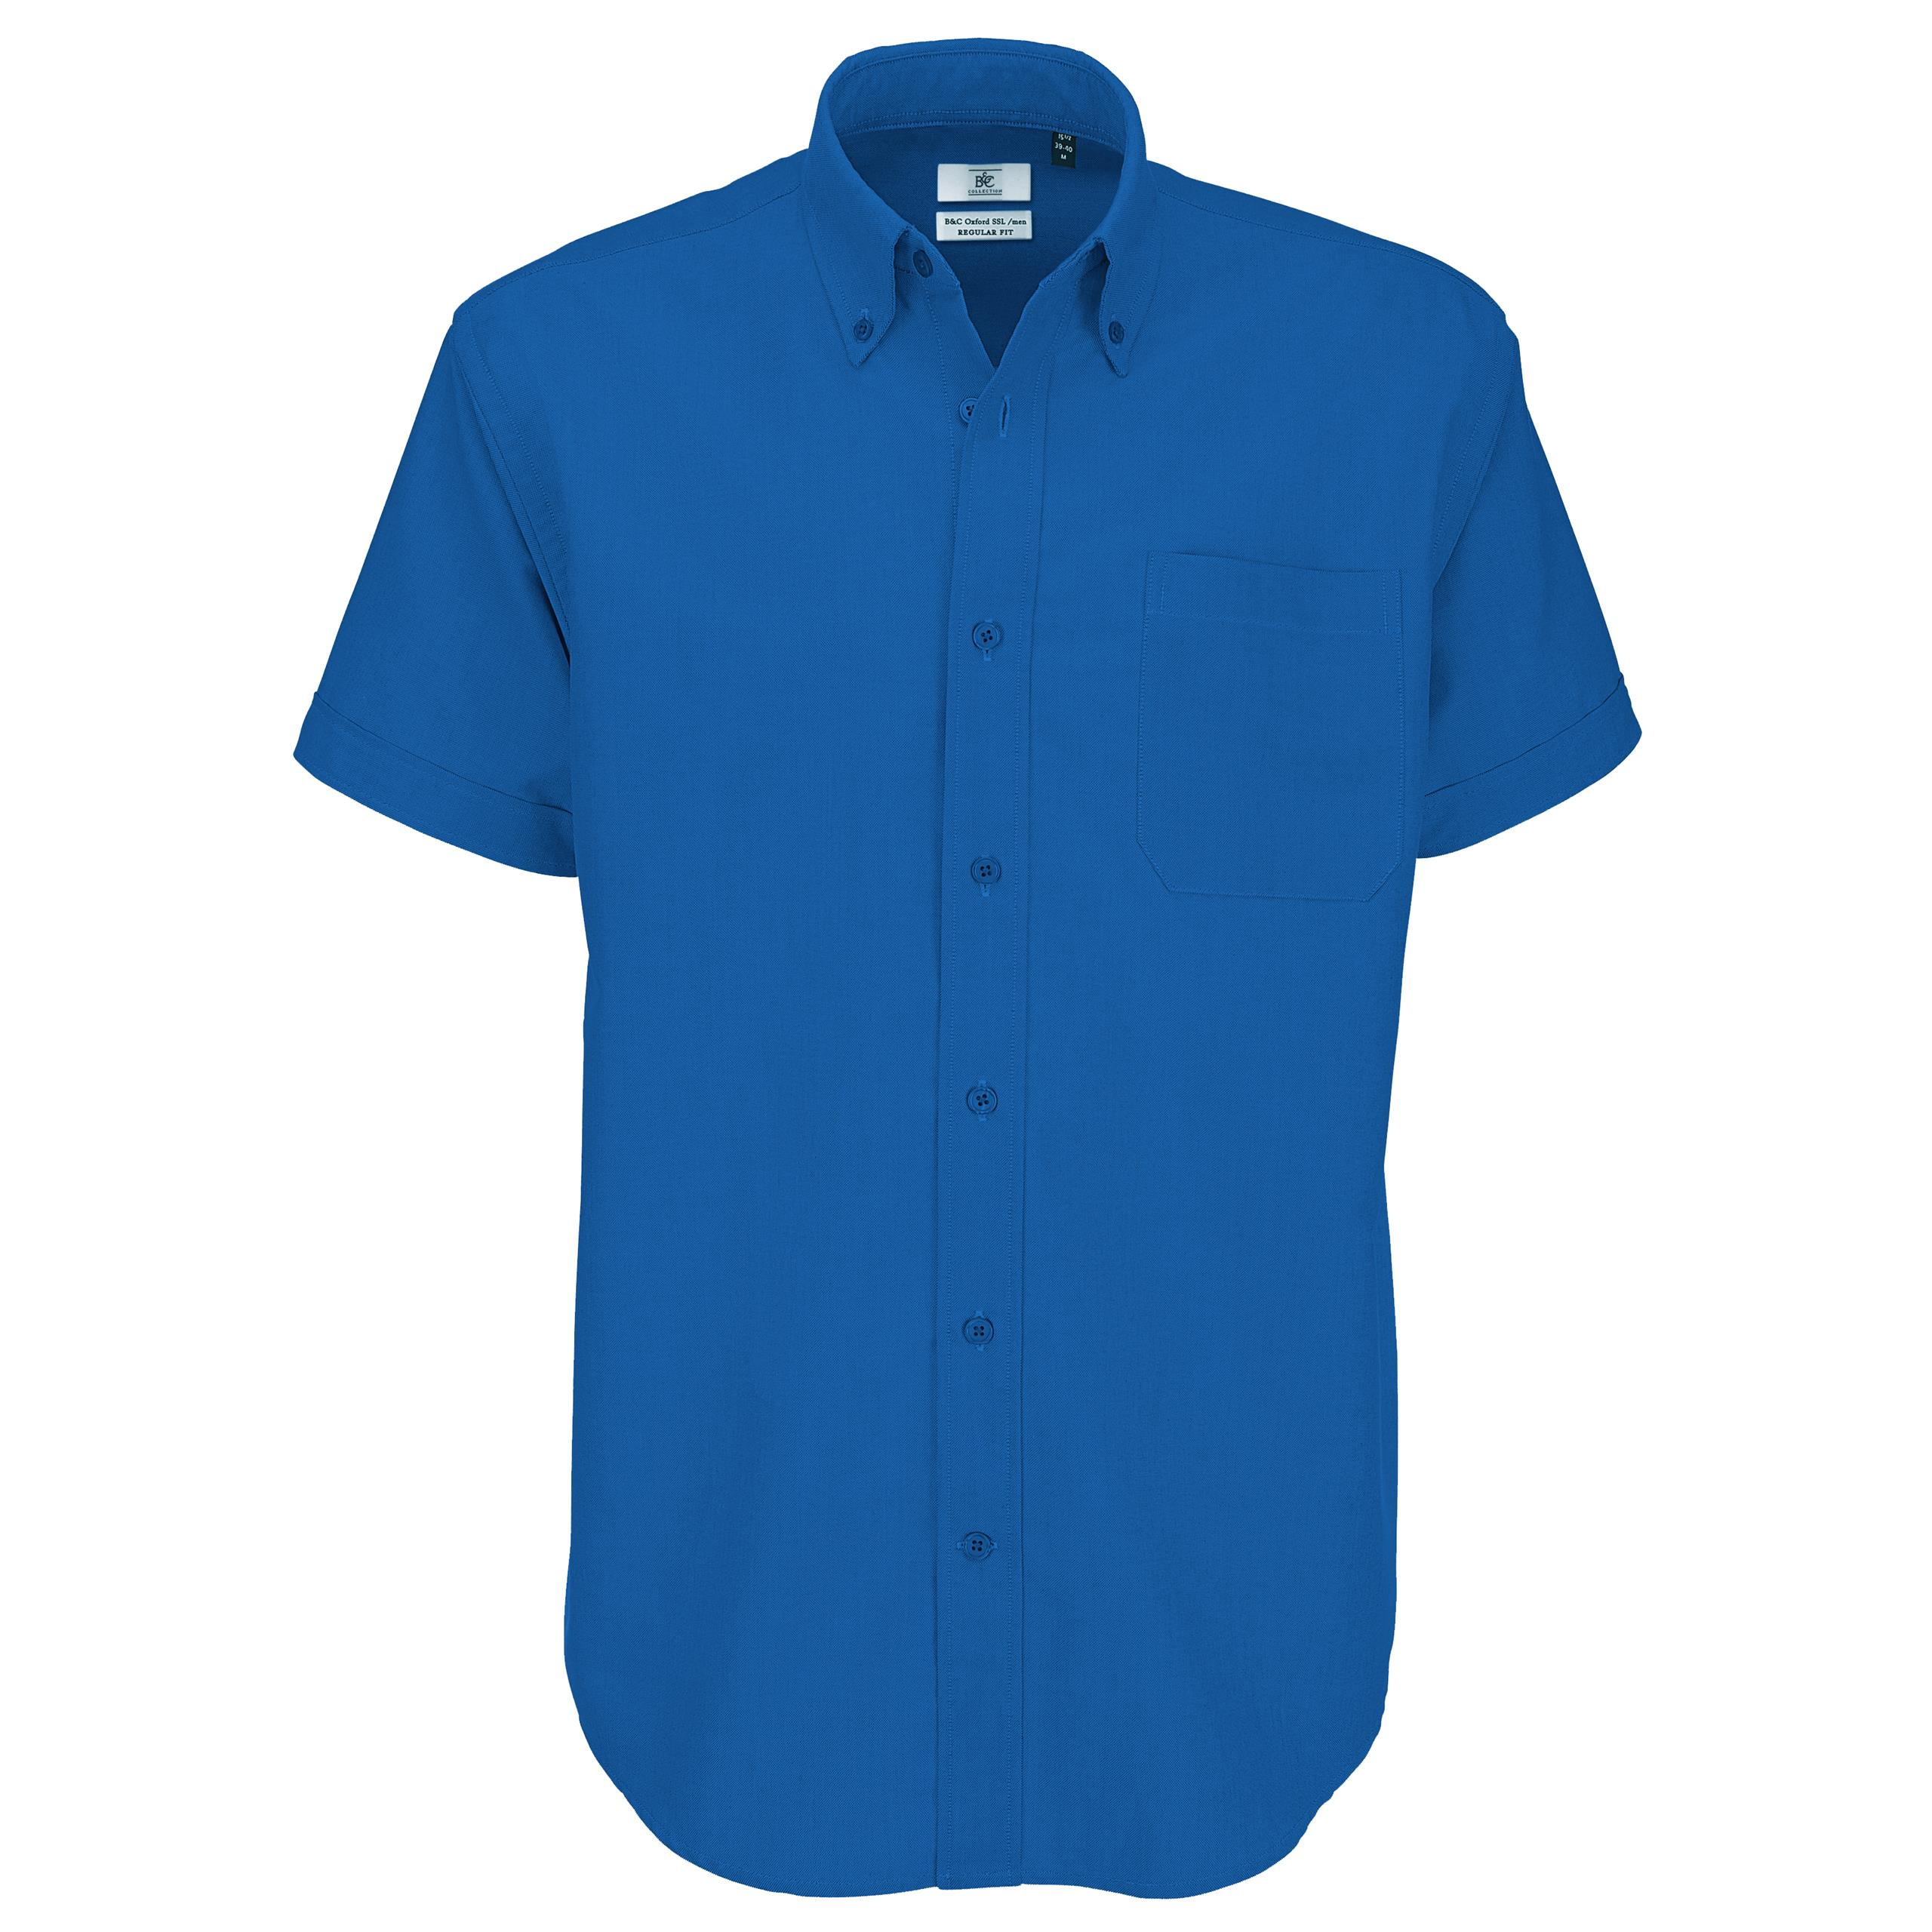 Buy MUSE FATH Men's Printed Dress Shirt% Cotton Casual Short Sleeve Shirt-Regular Fit Button Down Point Collar Shirt and other Casual Button-Down Shirts at 0549sahibi.tk Our wide selection is elegible for free shipping and free returns.